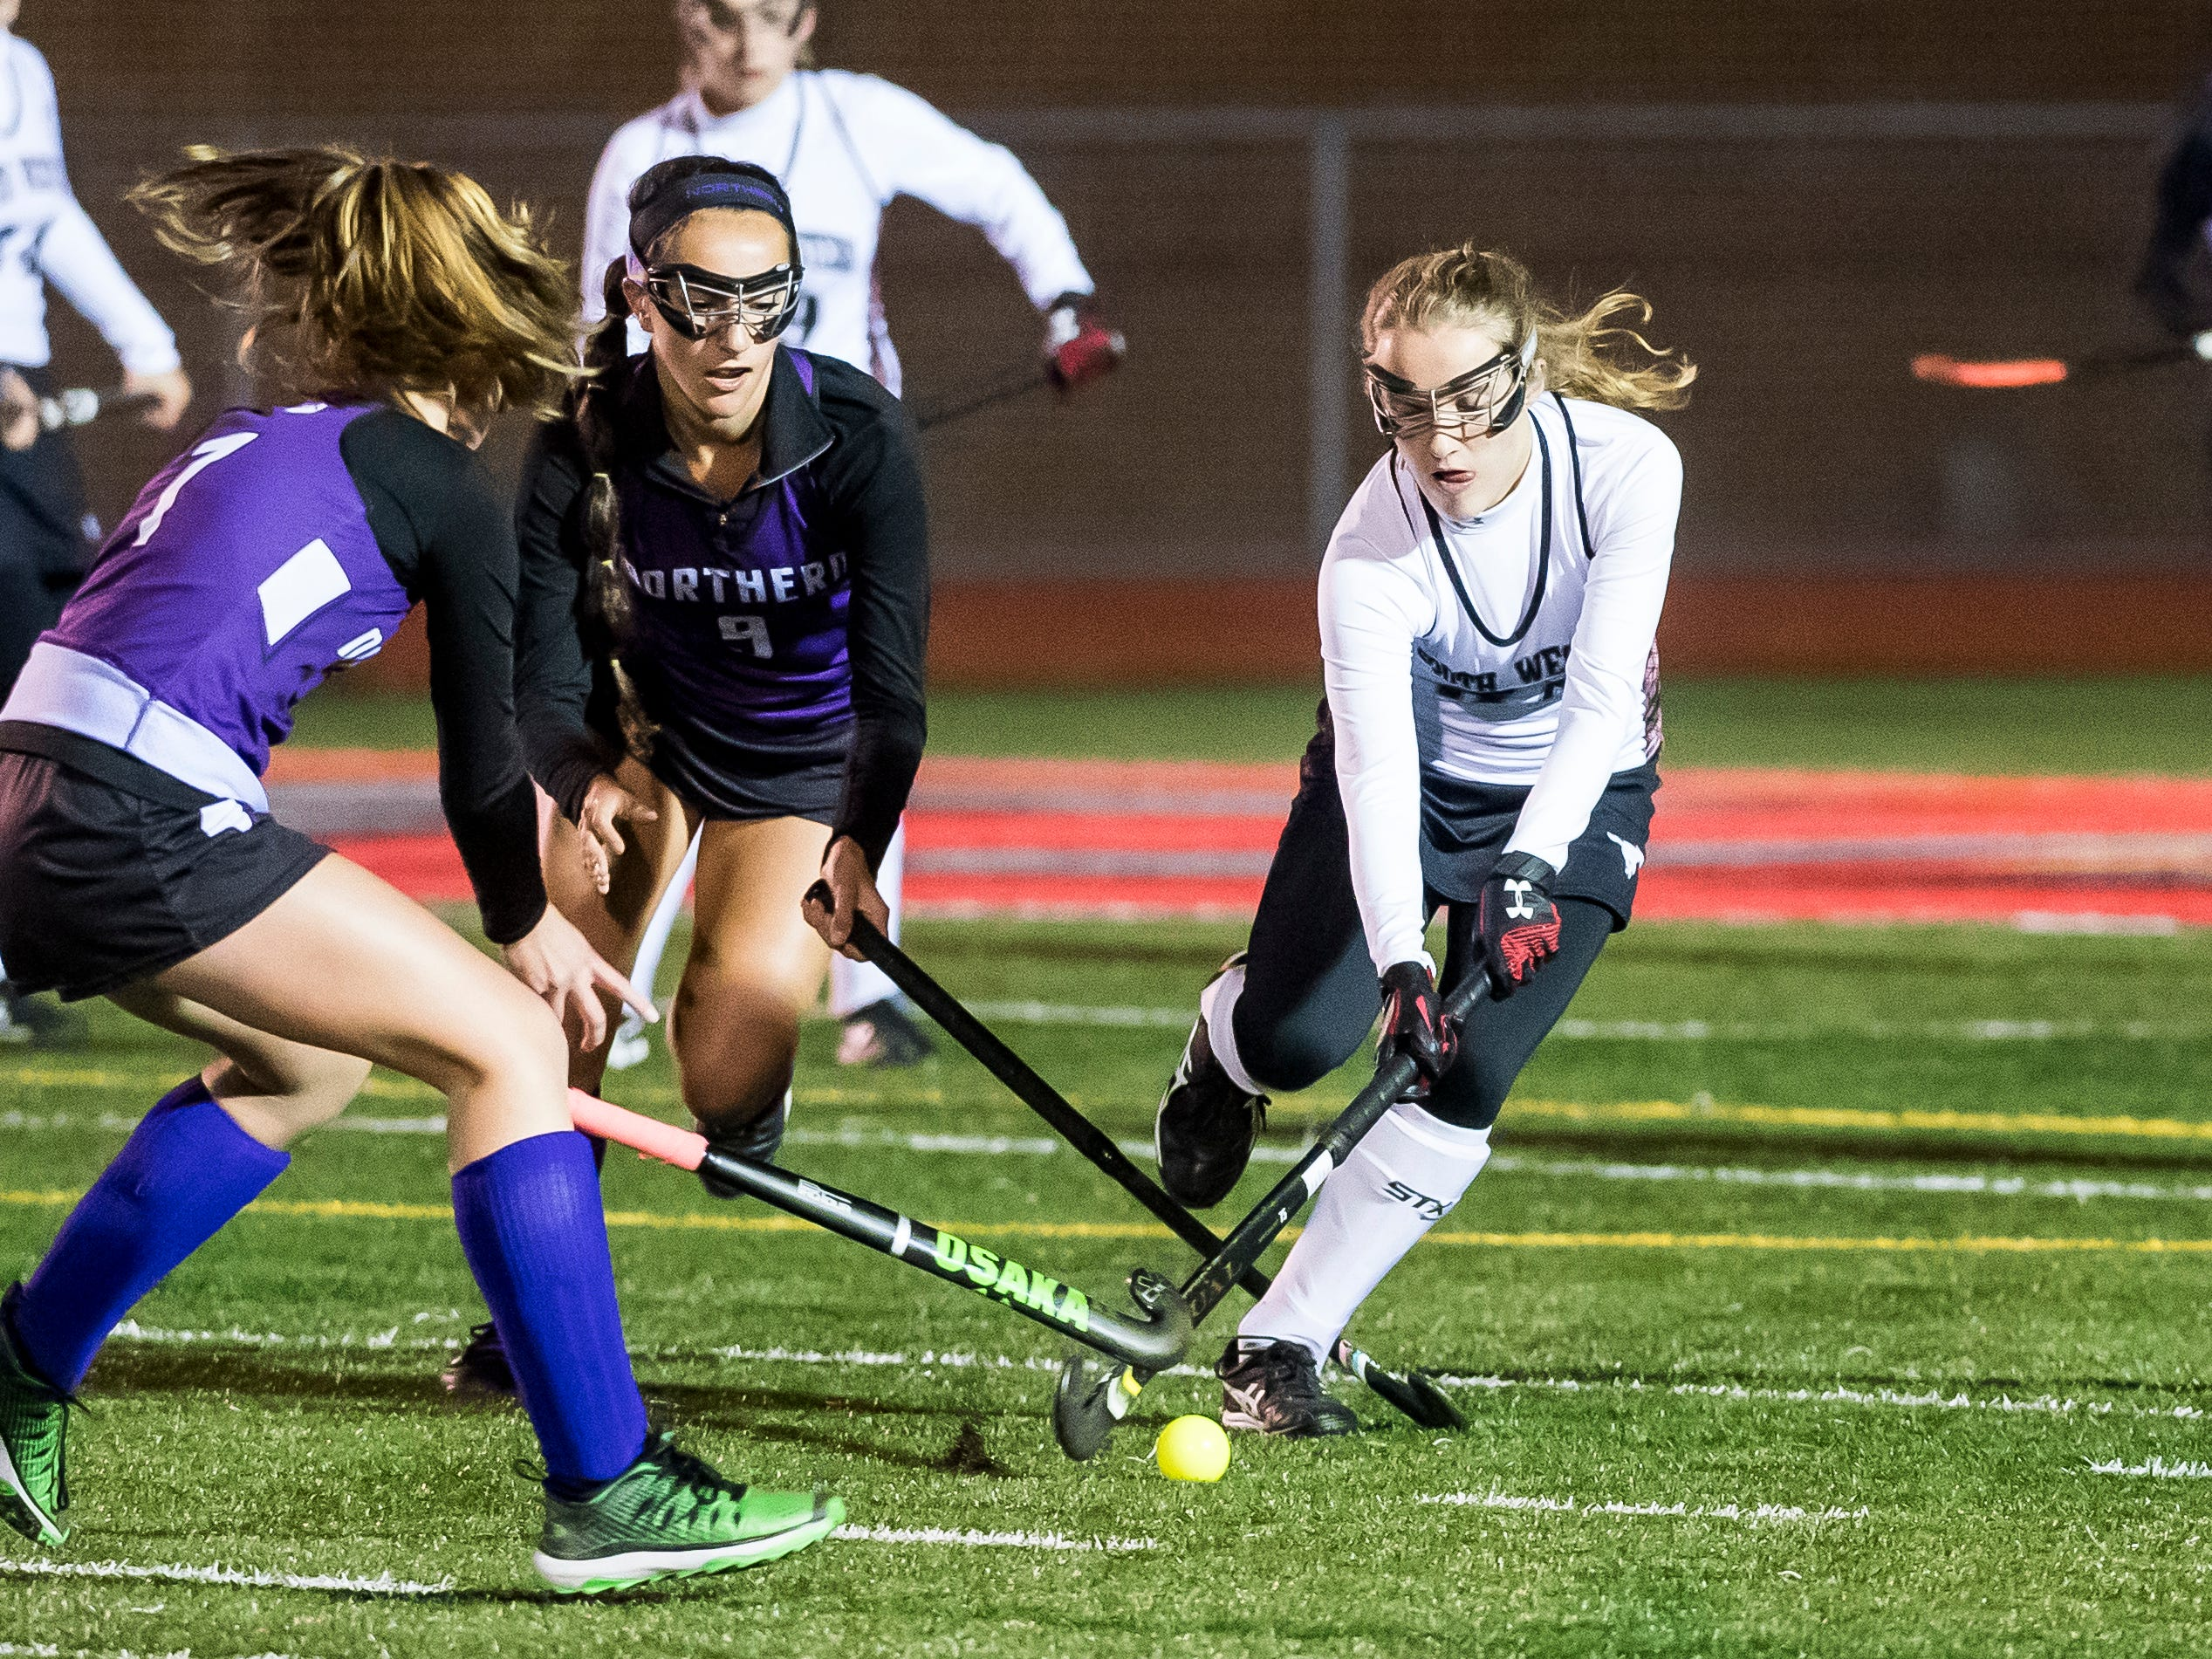 South Western Sophia Stranick battles for the ball with two Northern York players during a PIAA District III first round game at Bermudian Springs High School on Wednesday, October 24, 2018. The Mustangs fell 4-2.